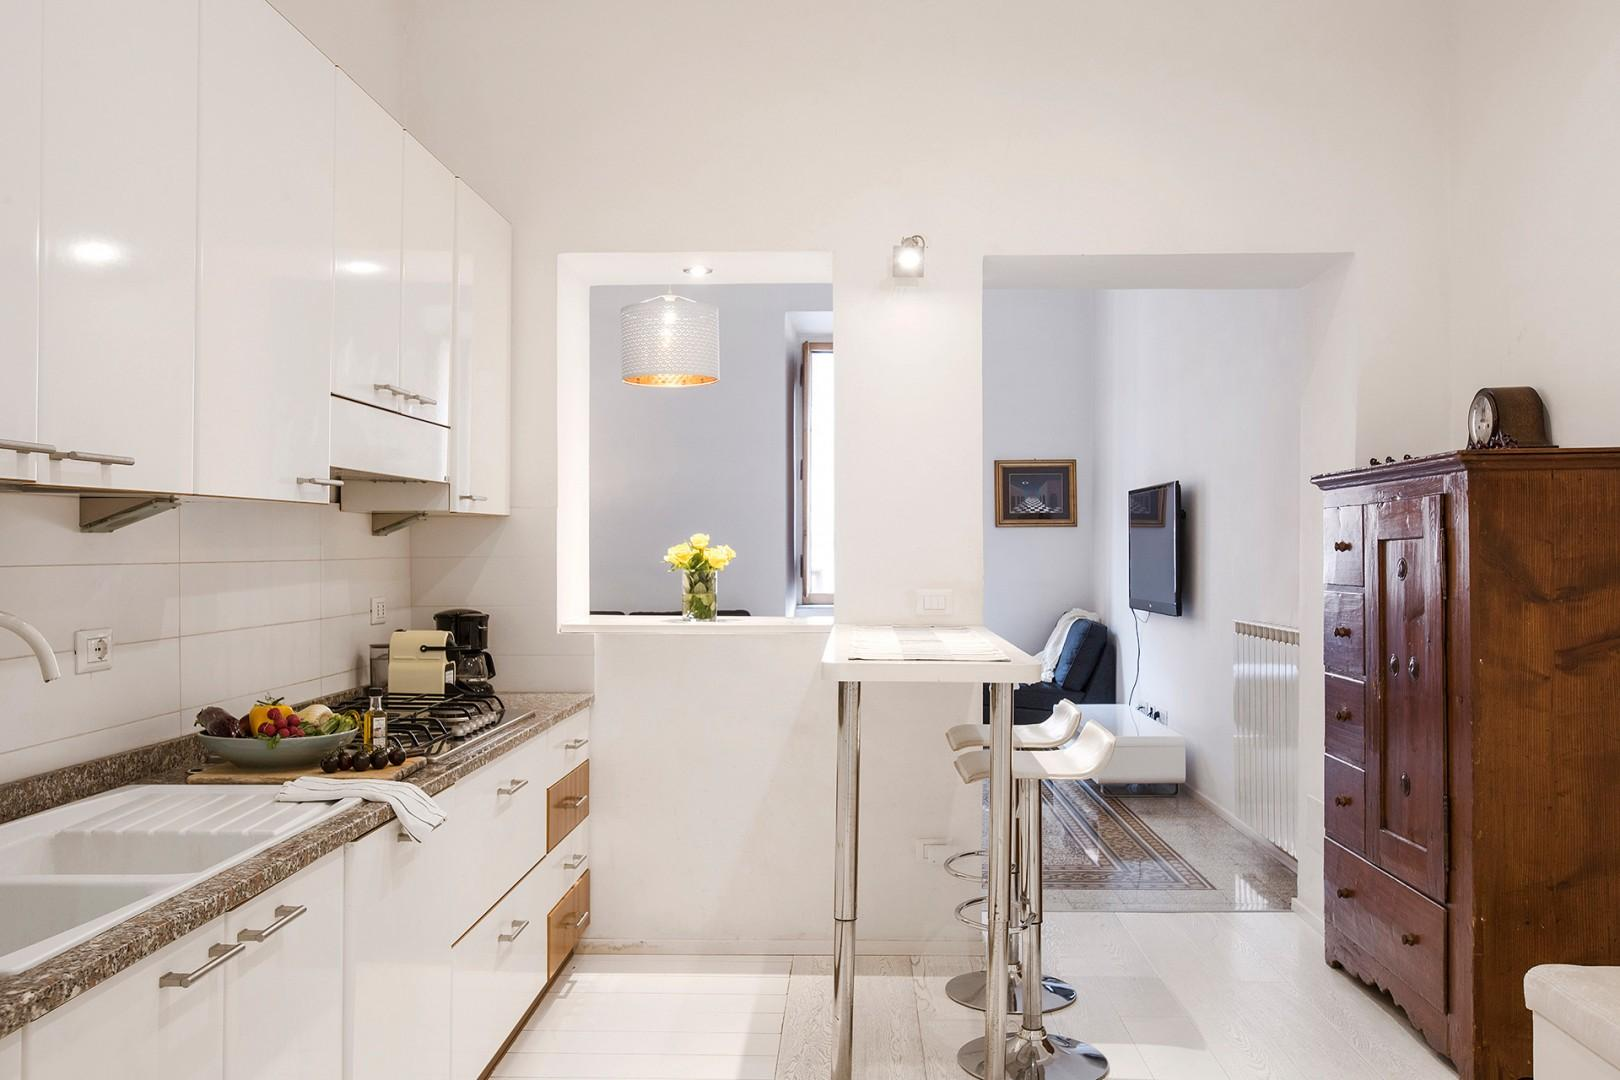 Large modern kitchen with a breakfast bar for 2.